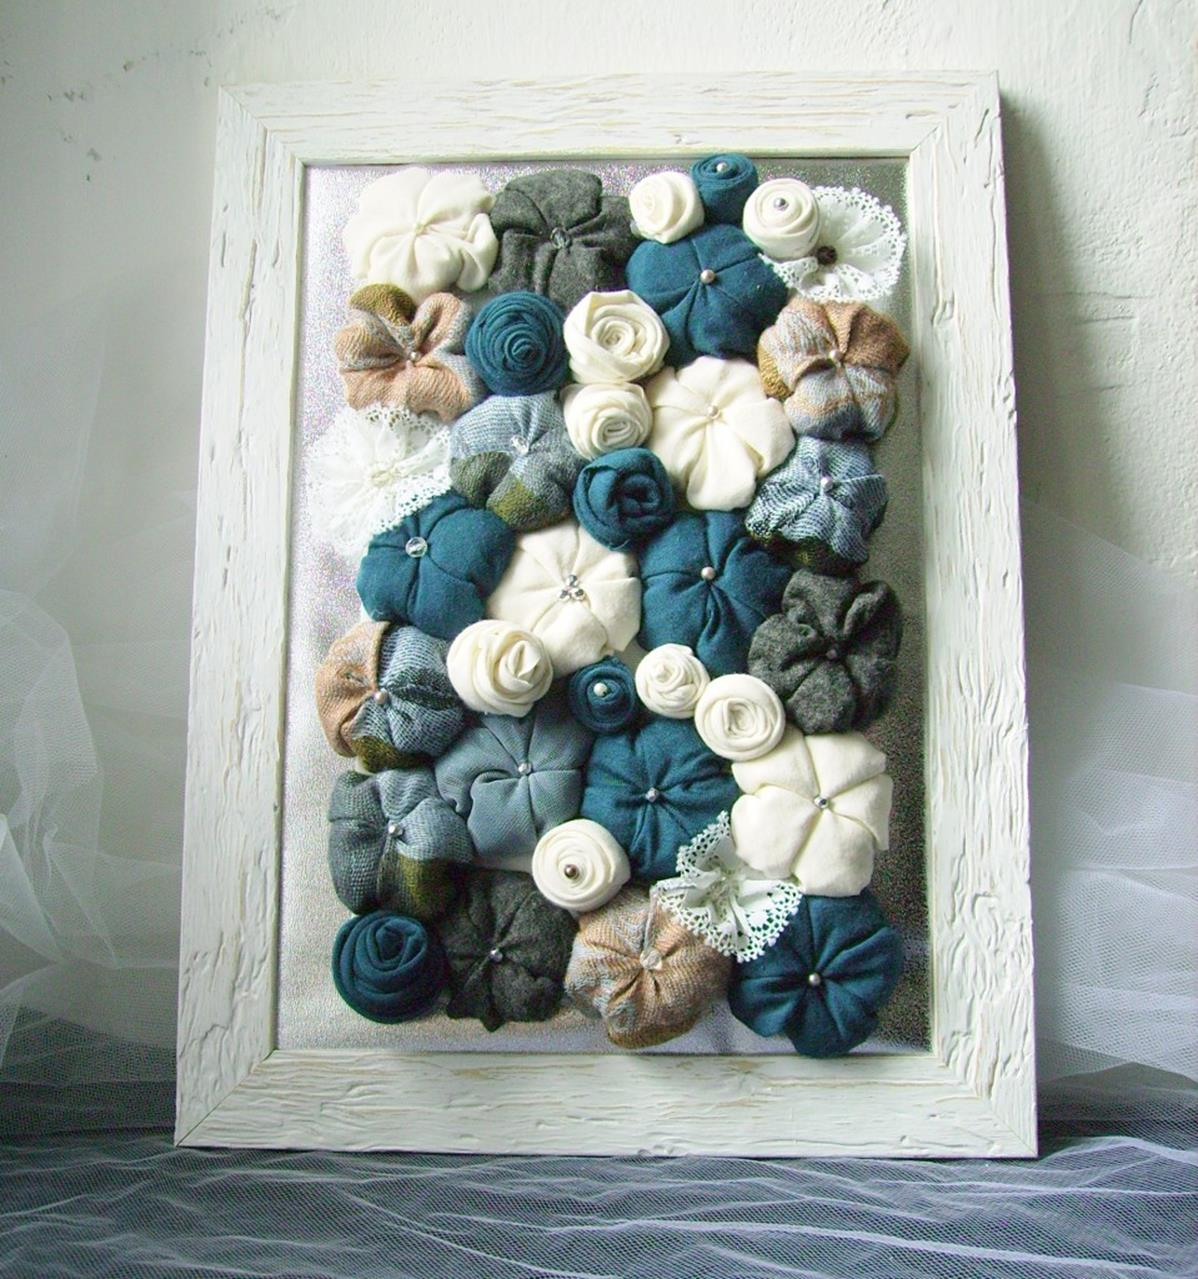 DIY Easy Shabby Chic Arts and Crafts Ideas 30